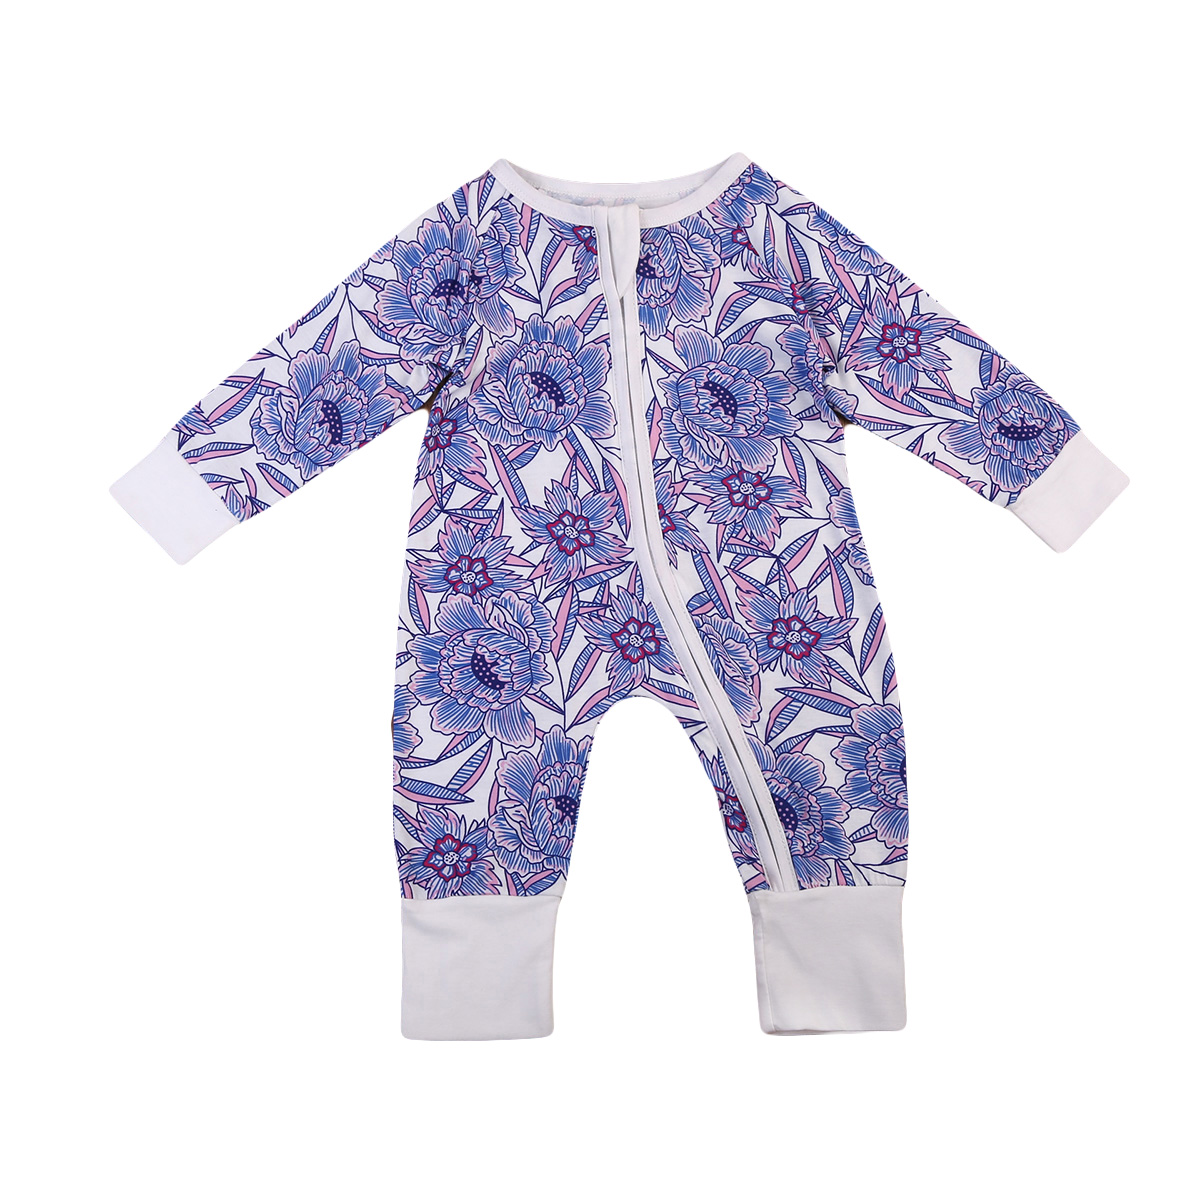 Newborn Infant Baby Boy Girl Romper Jumpsuit Purple Floral Rompers Warm Clothes Outfit